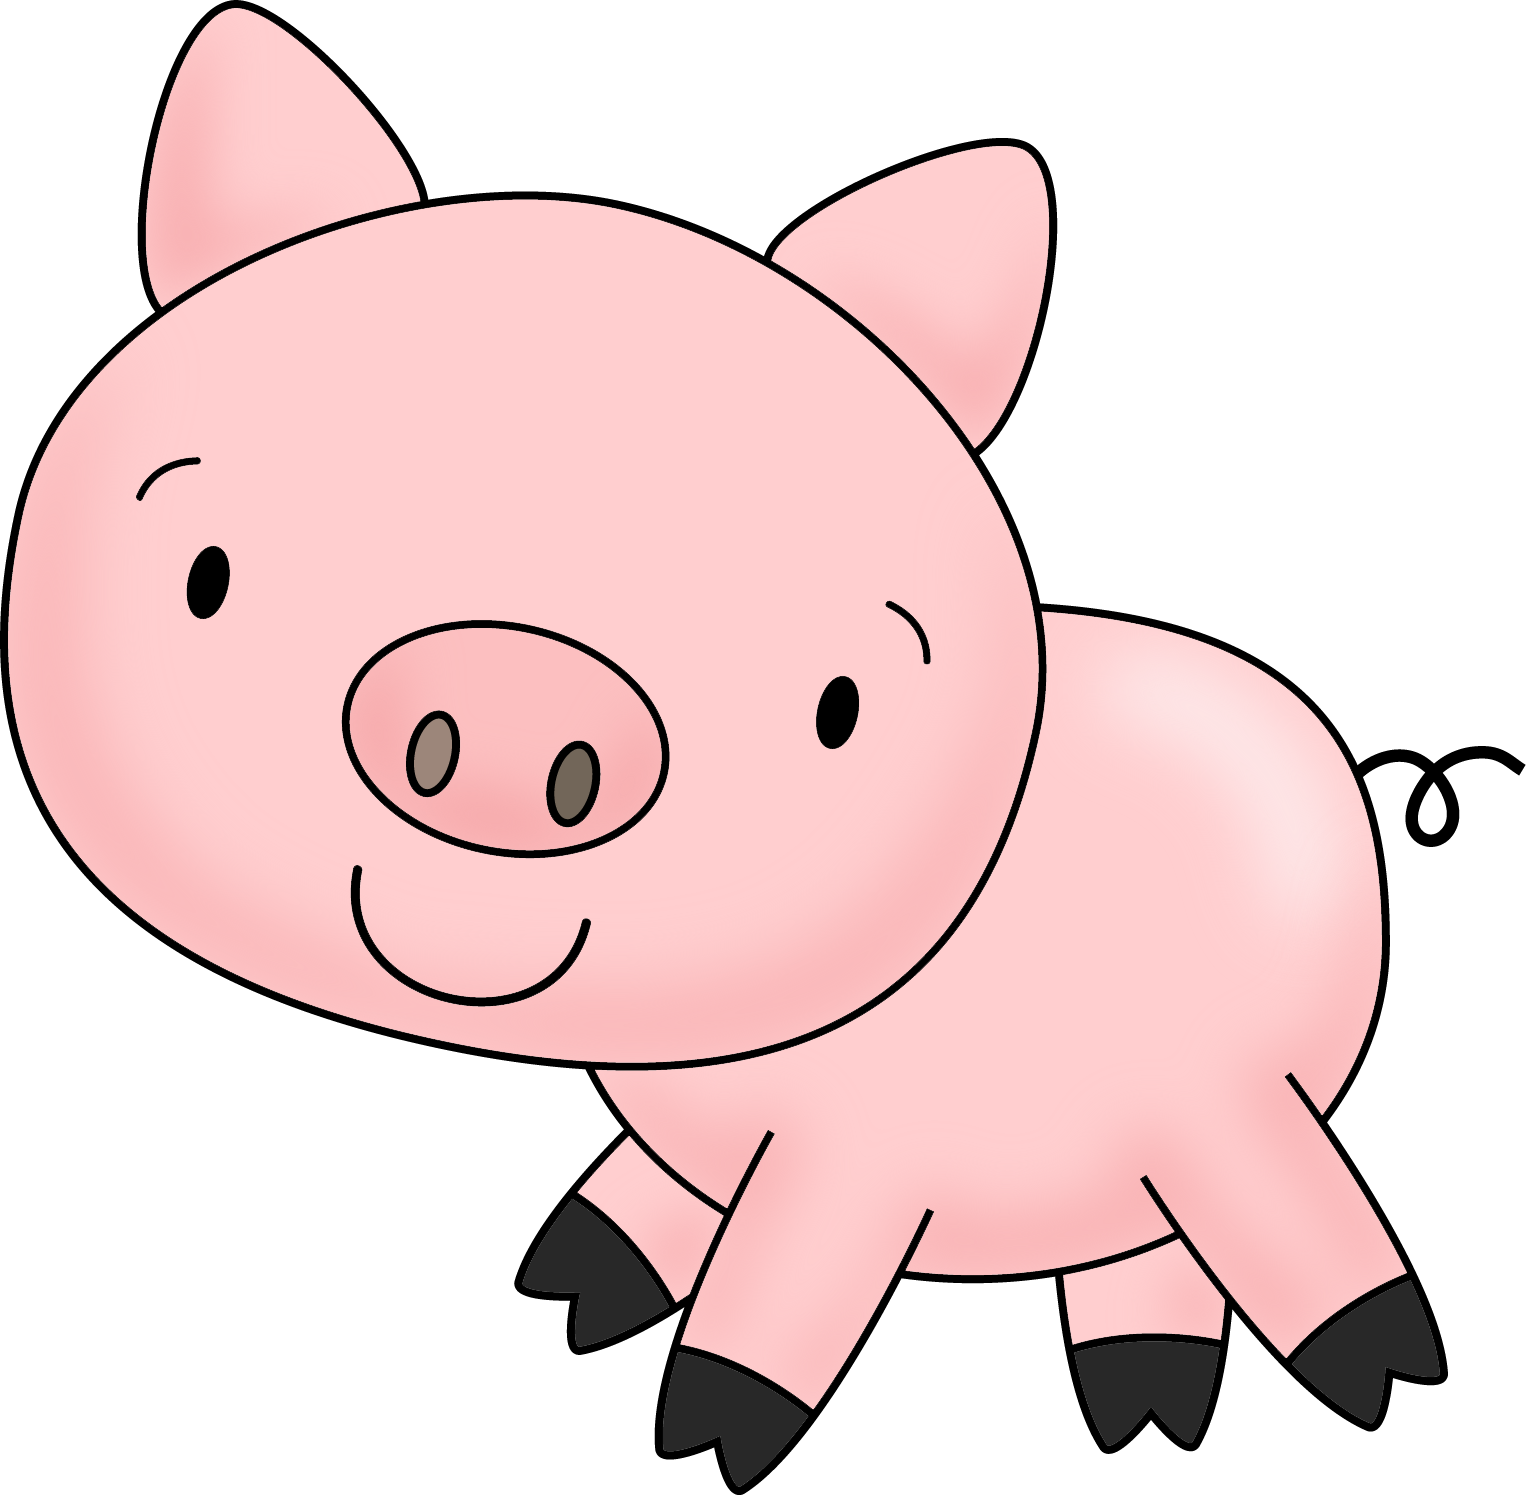 Pig clipart summer. Charlotte s web vocabulary